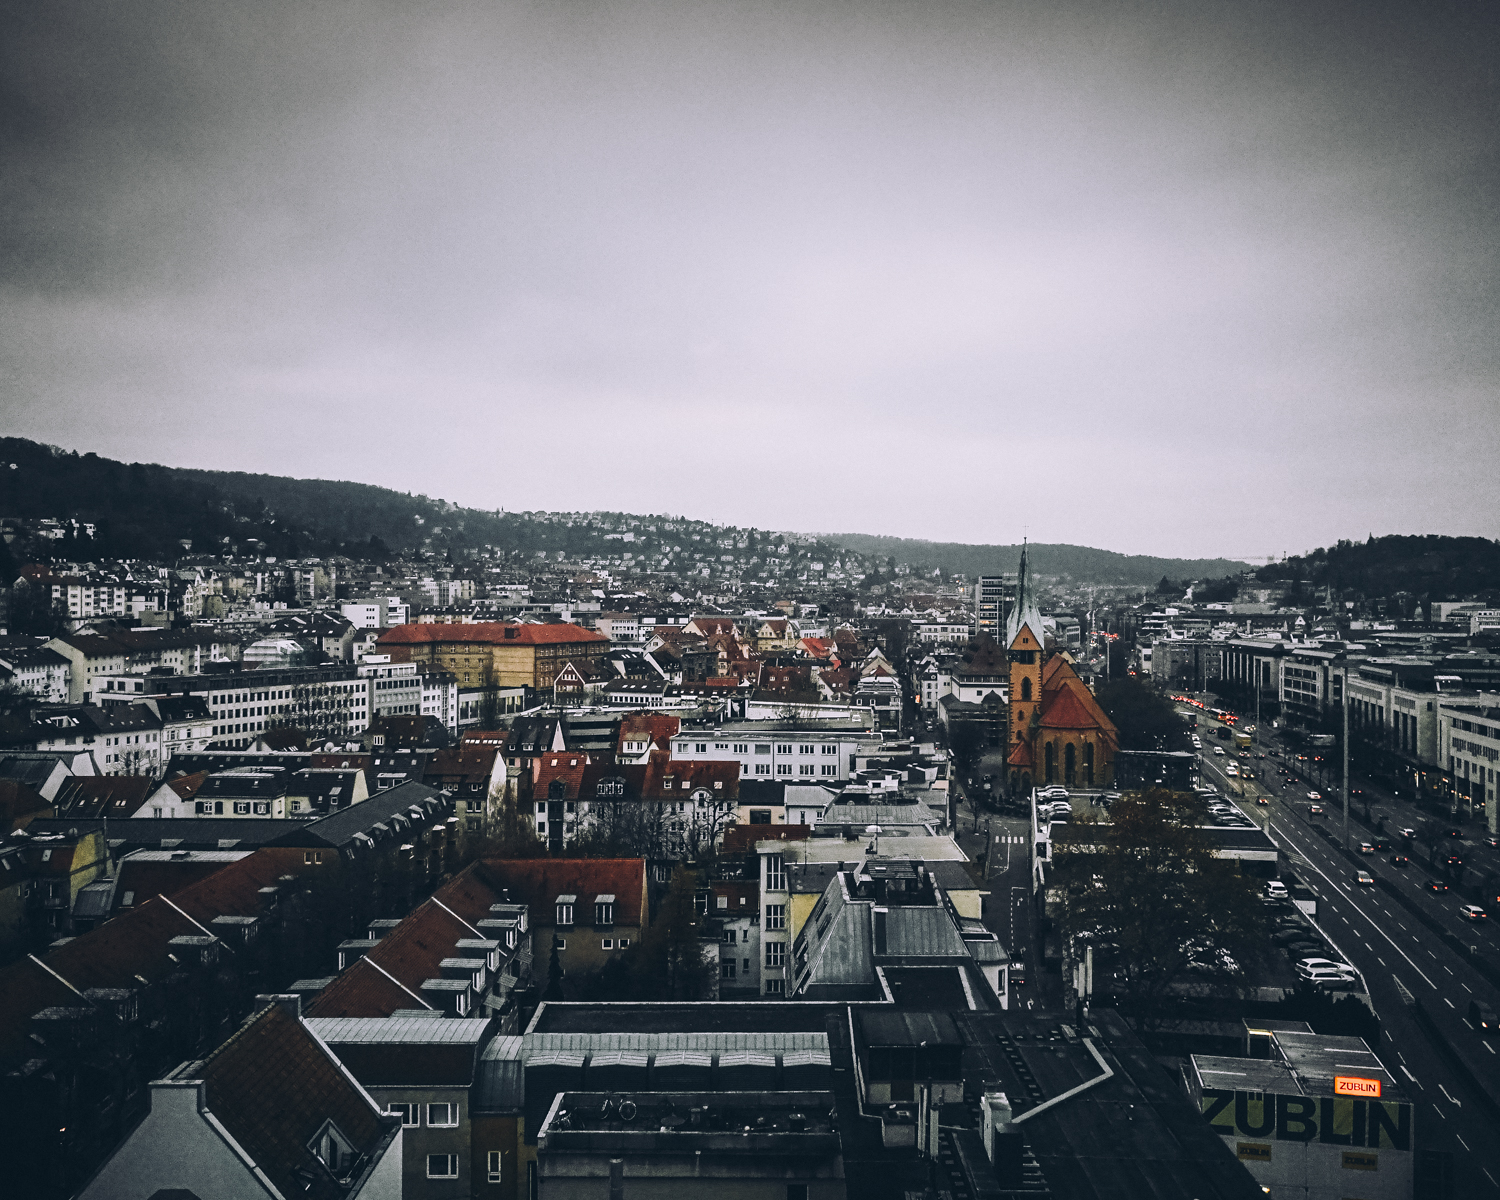 Above Stuttgart a few weeks into getting to know the P9. This locations fueled some insightful testing for myself to better judge the sensors reaction to light.